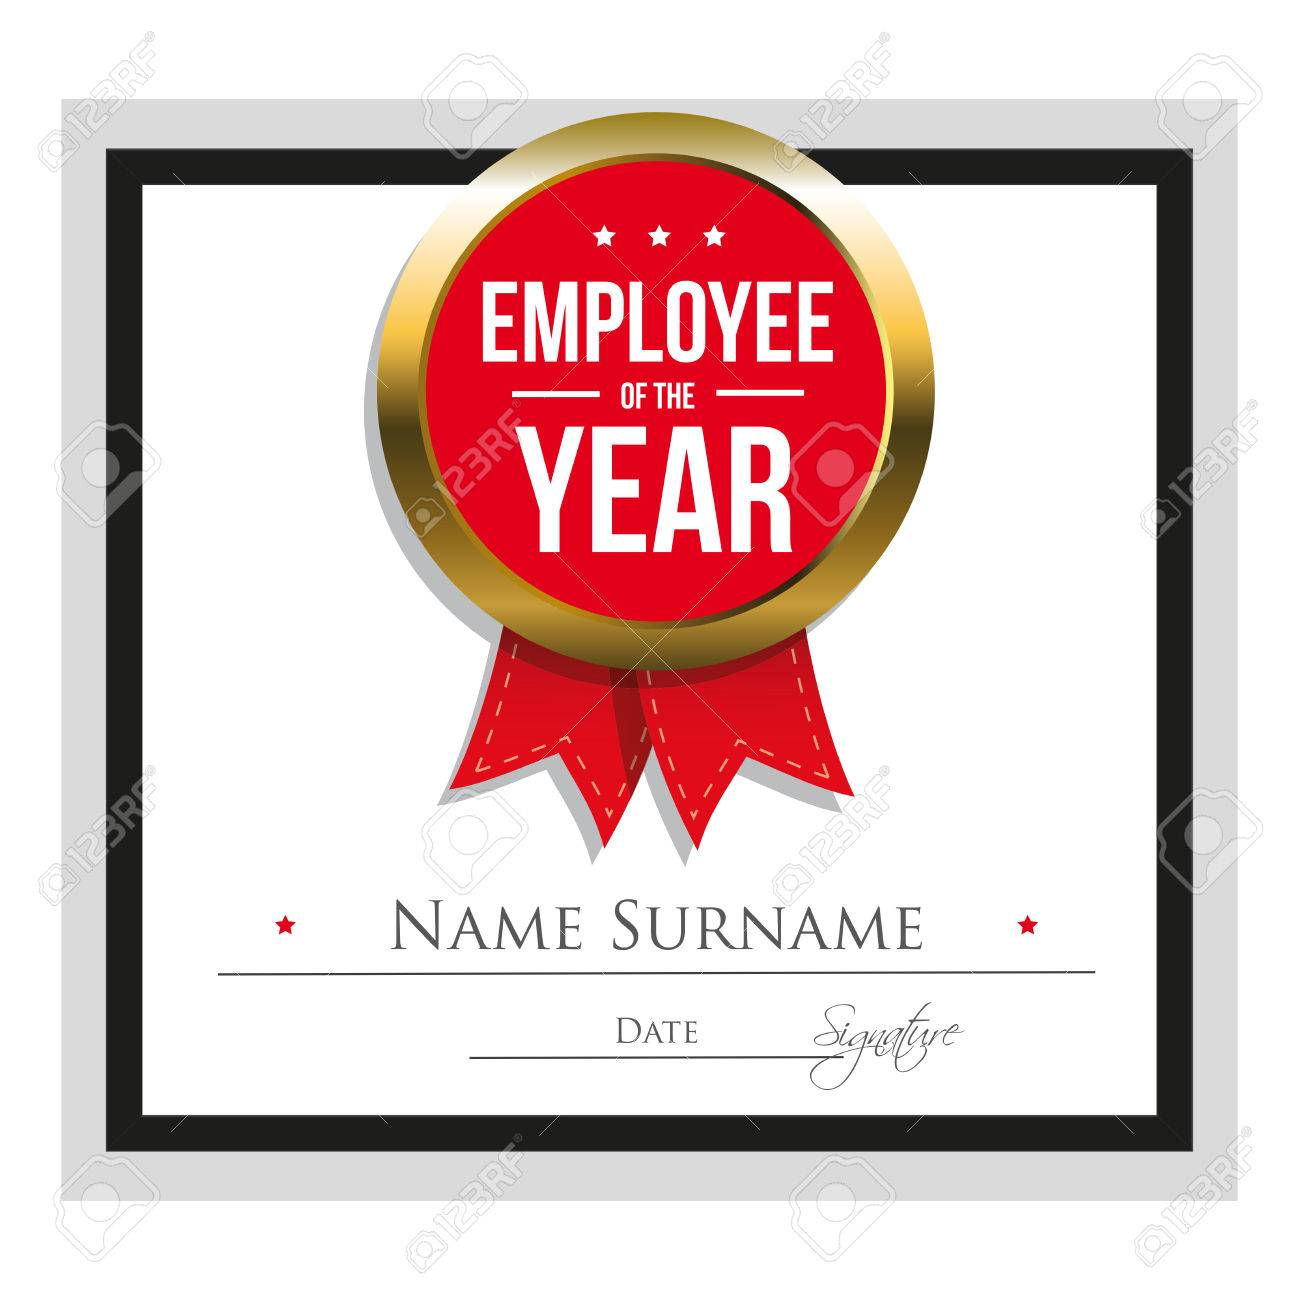 Employee Of The Year Certificate Template Royalty Free Cliparts